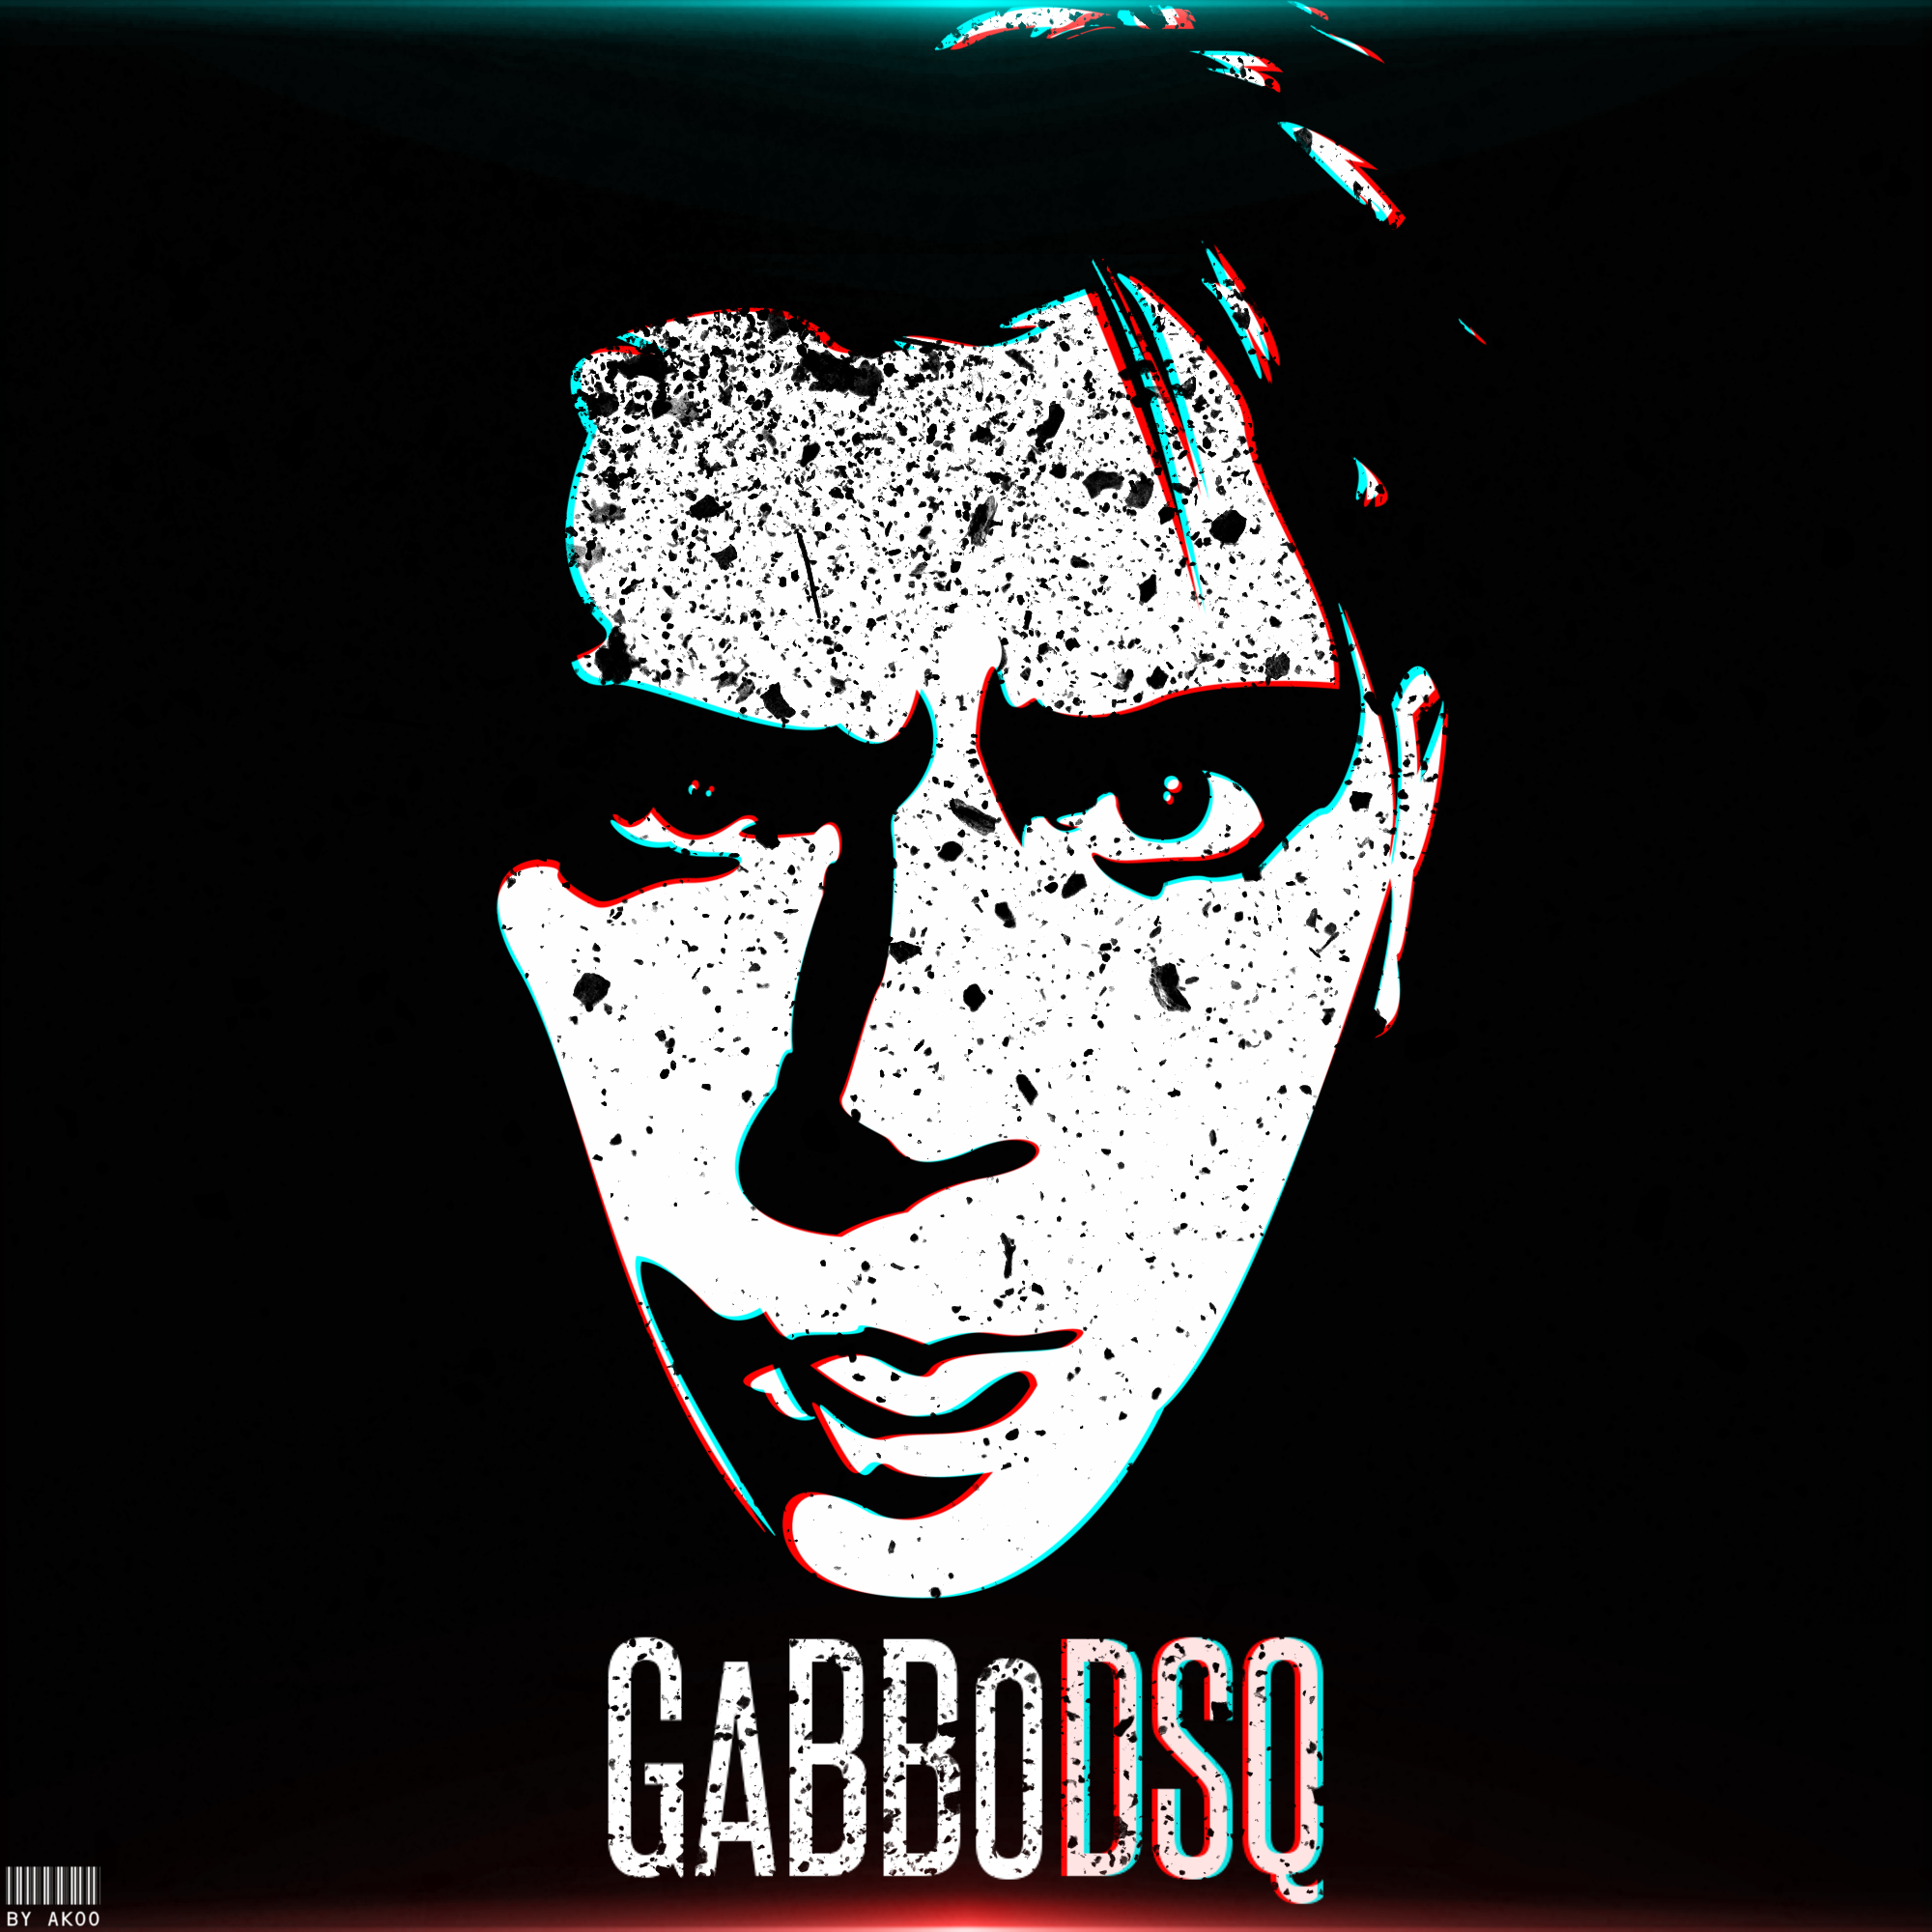 gimp illustrator gabbodsq by akoo97 on deviantart